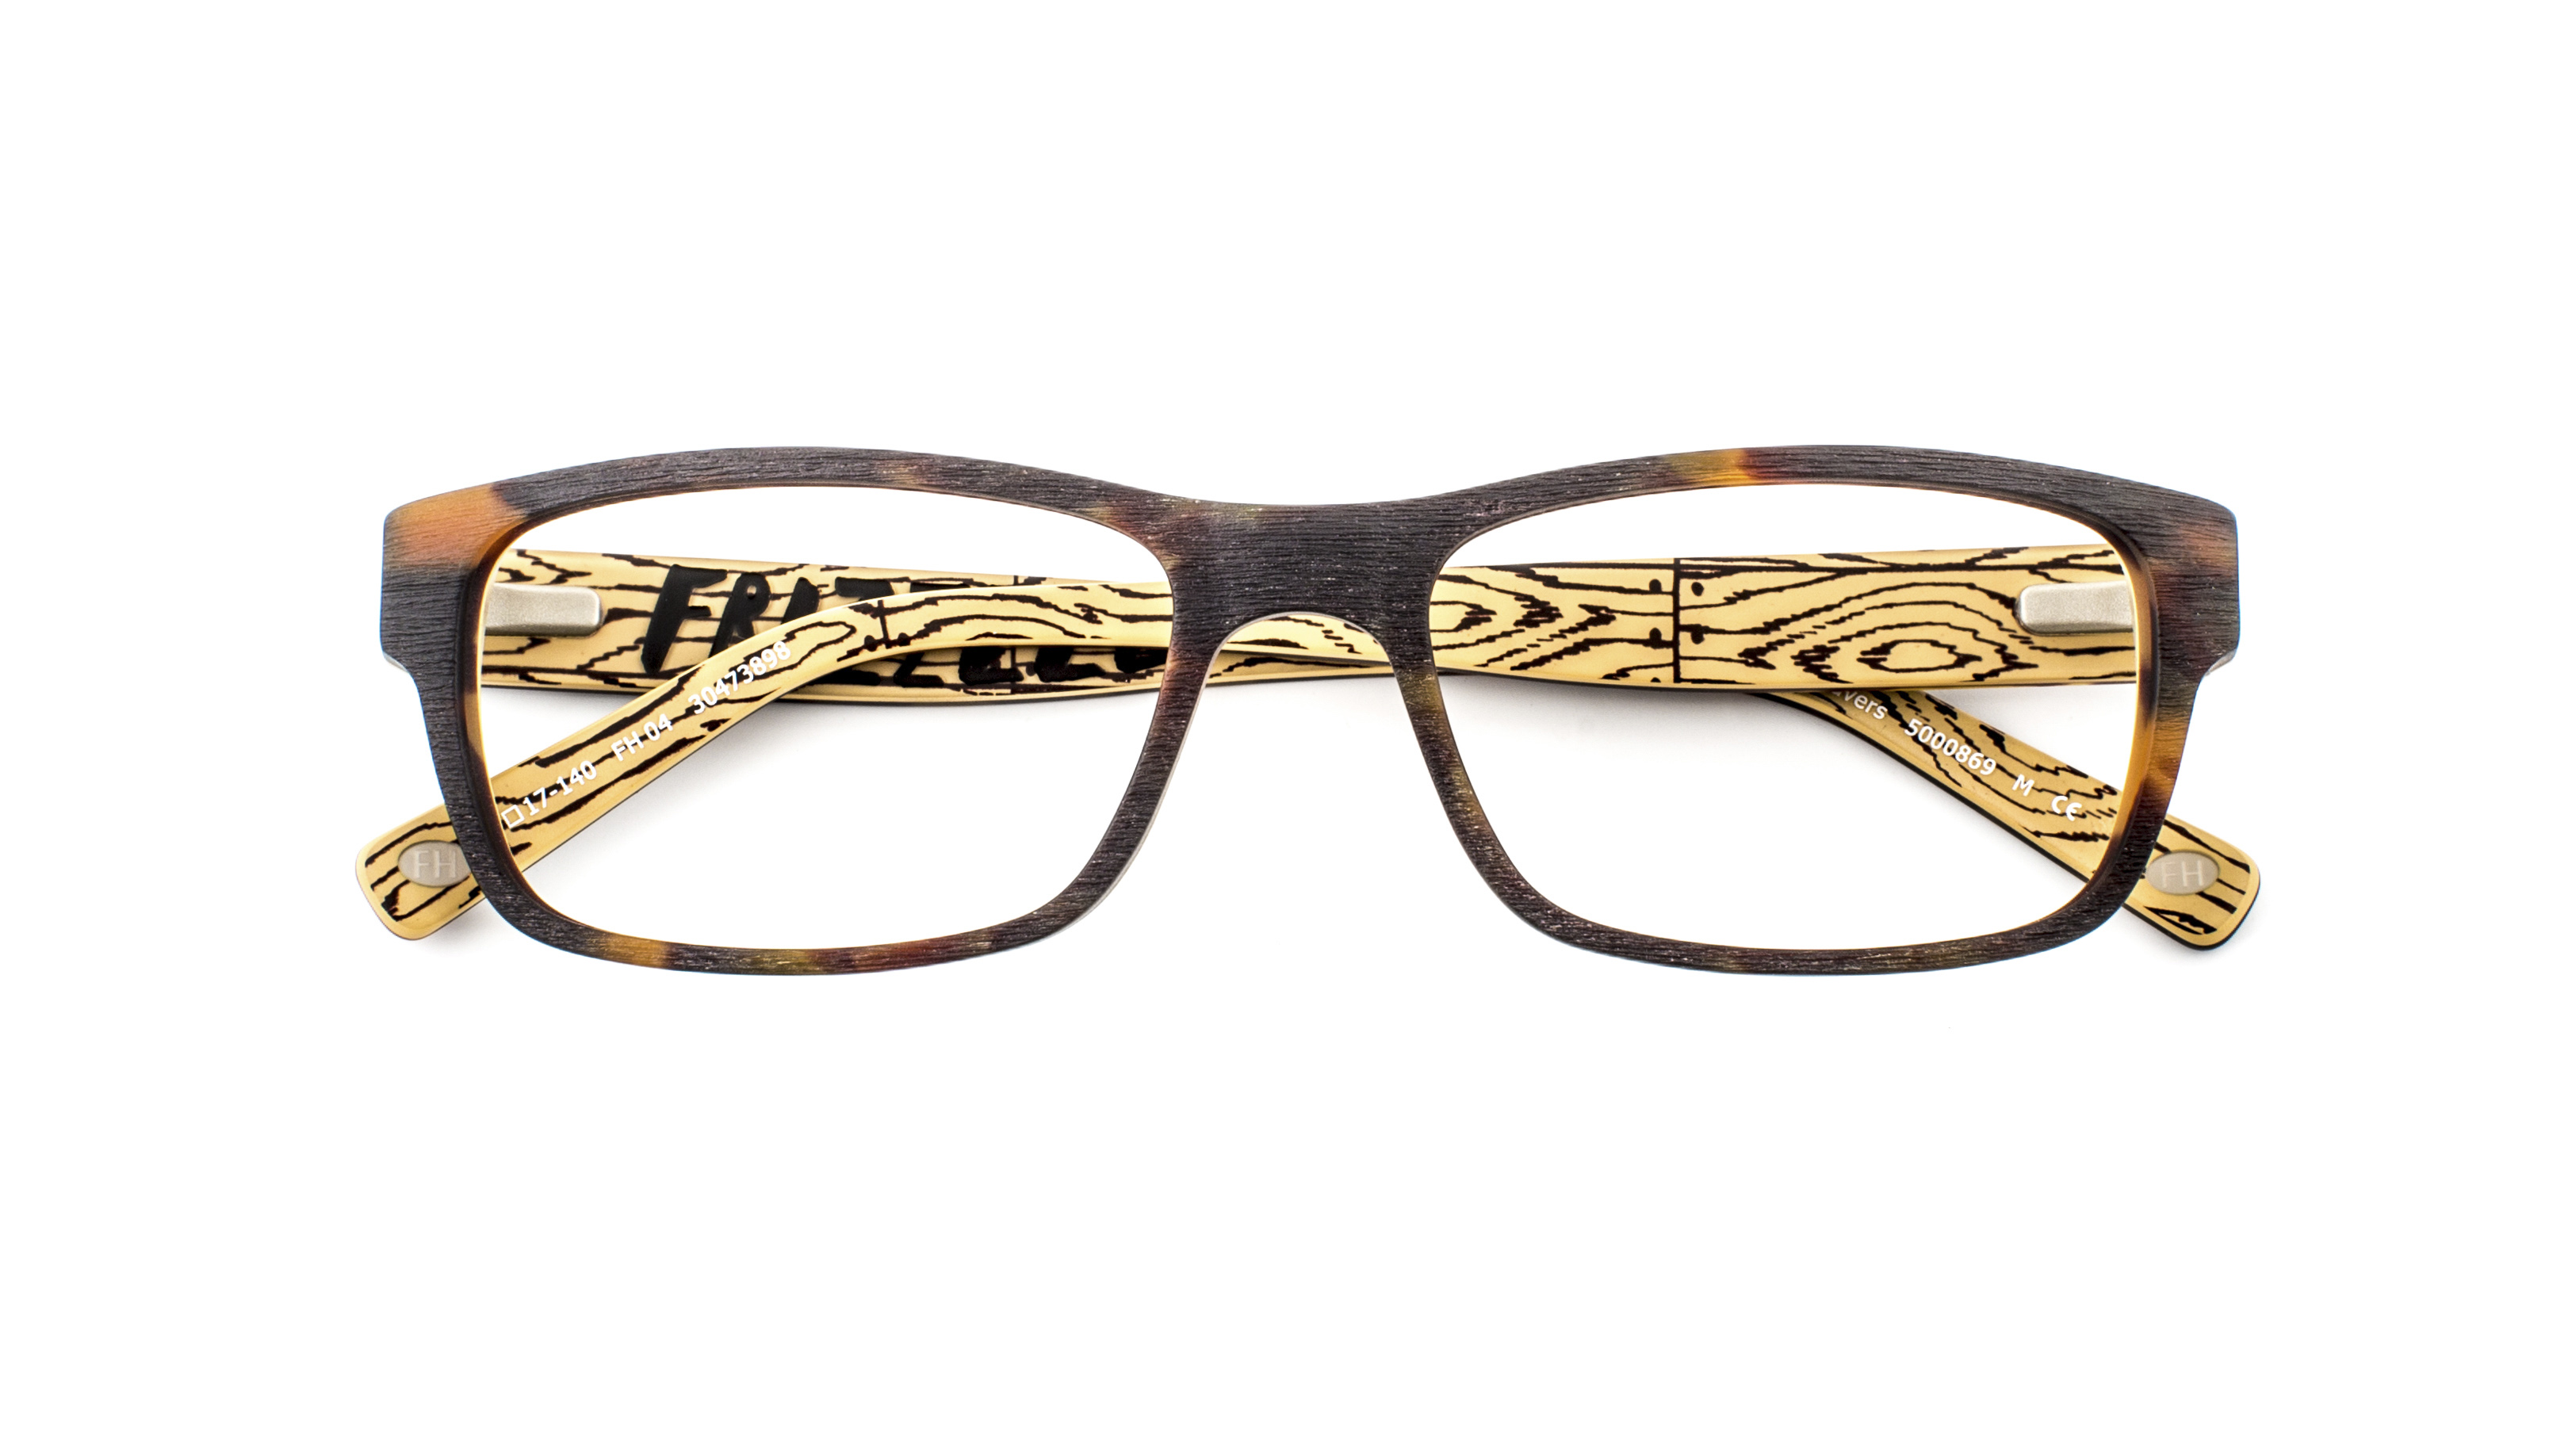 dick-frizzell-frame_front_sku-30473898-front_rrp-2-pairs-from-169